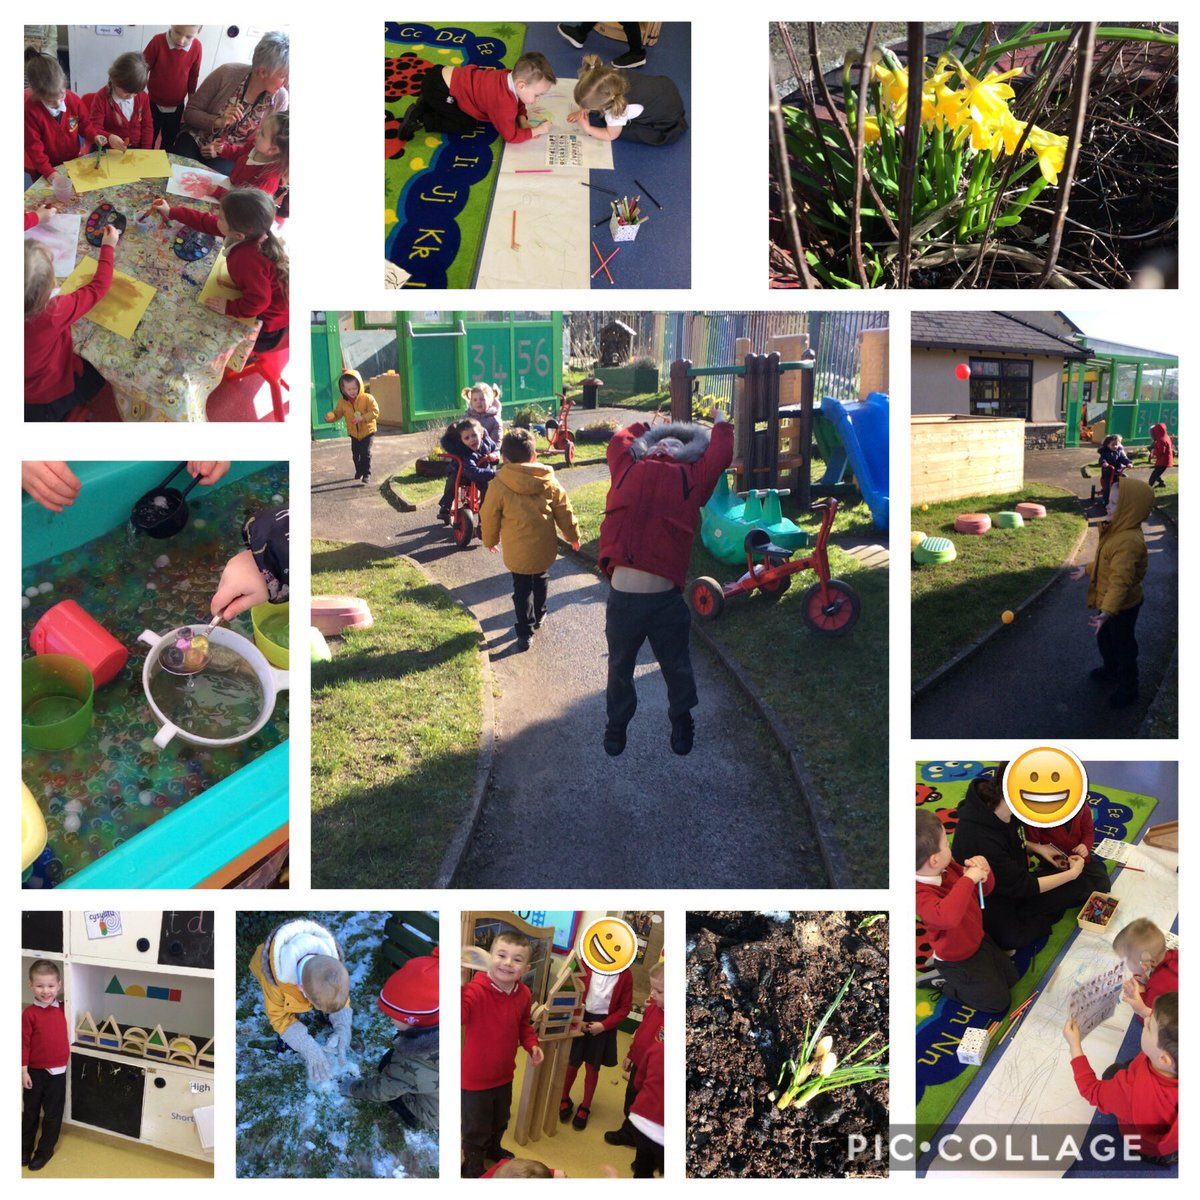 Feels like we have experienced lots of  different types of weather this week! The children hunted for Elsa in nursery garden (because she made it snow) & built Olaf  we watered our flowers in the sunshine  and splashed in muddy puddles in the rain @garntegprimarypic.twitter.com/tlNBfCOoAr